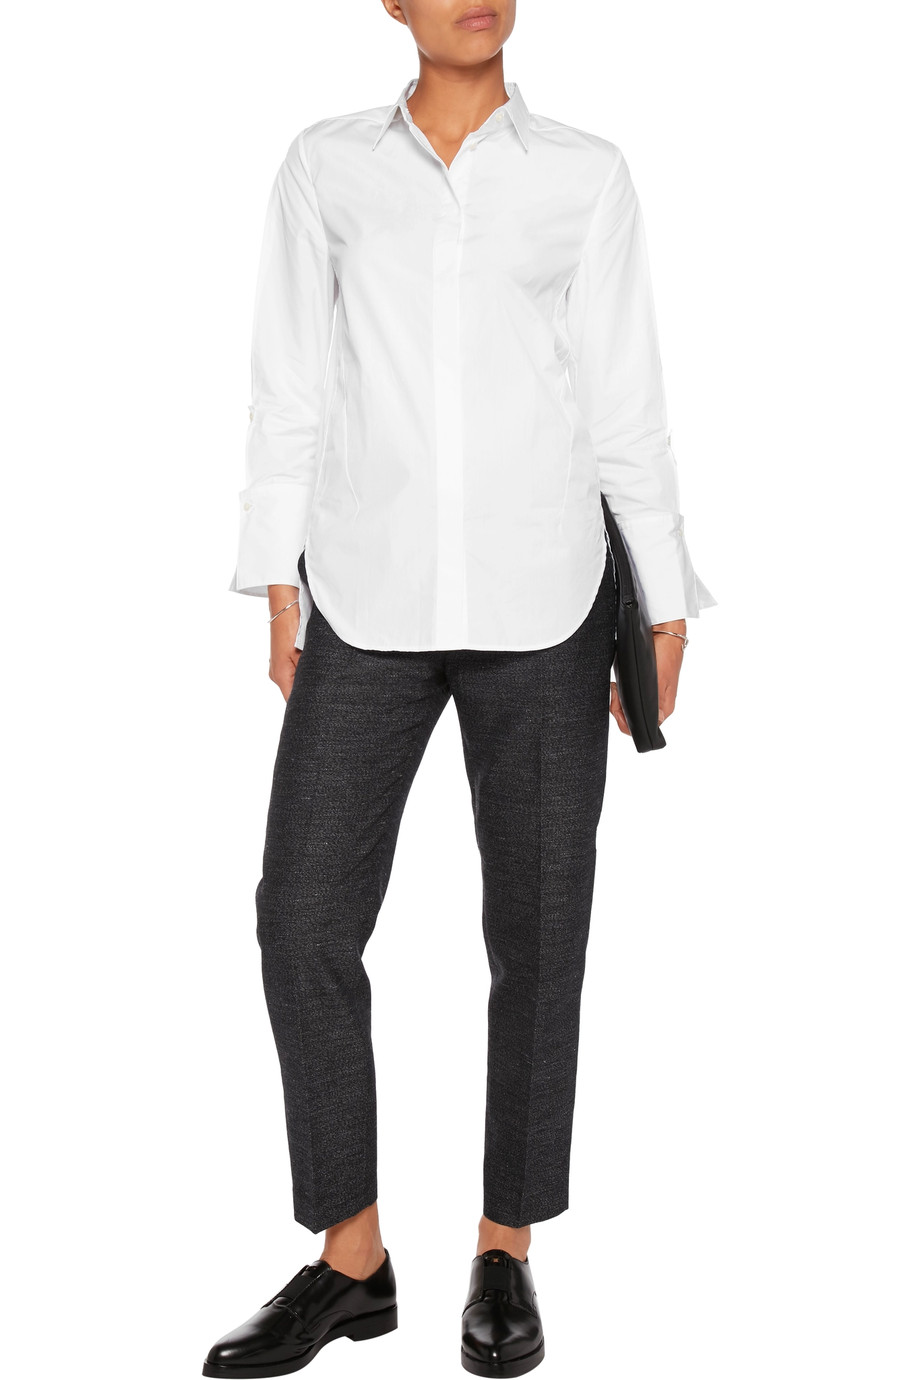 Cotton Poplin Shirt by 3.1 Phillip Lim, £86 on The Outnet